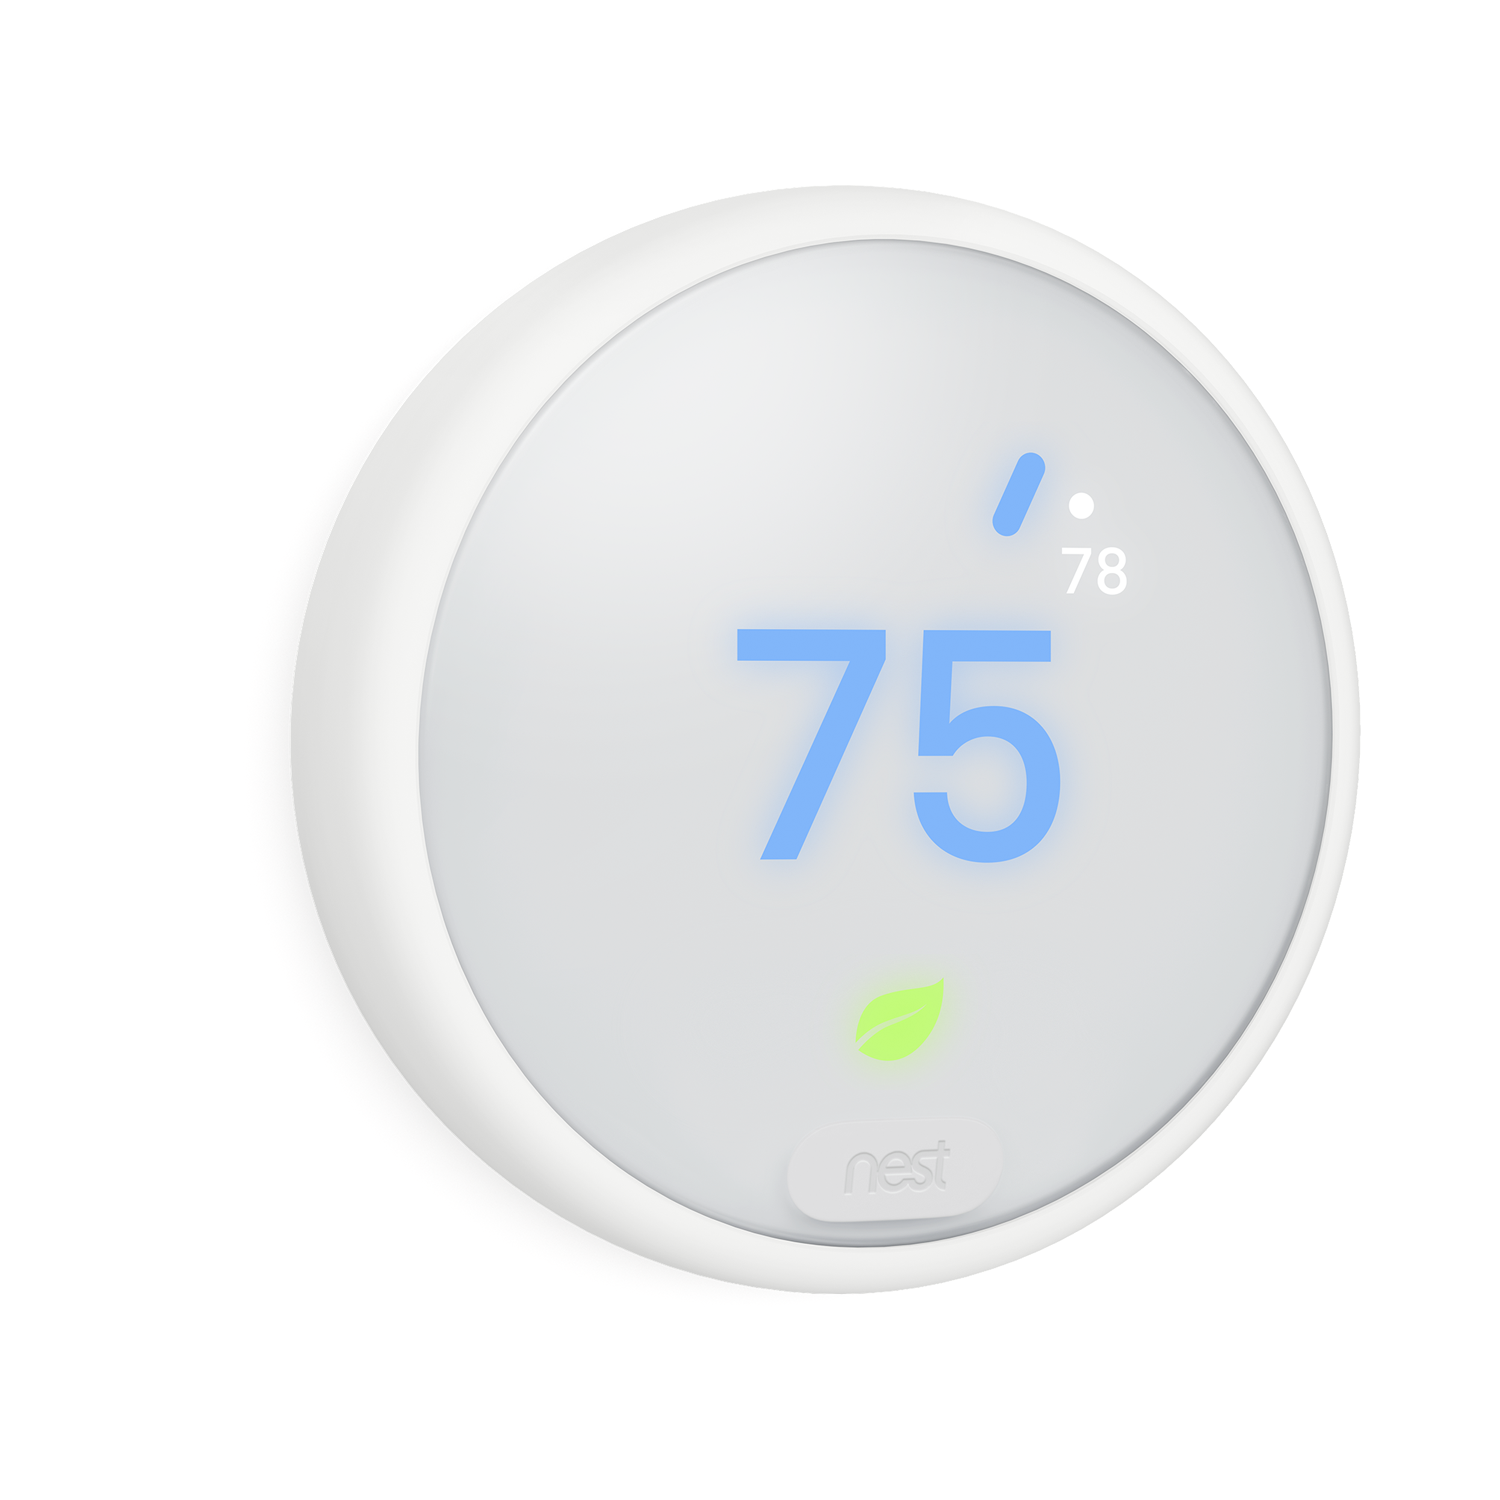 Nest Thermostat E Limota Home Automation Reach Out To